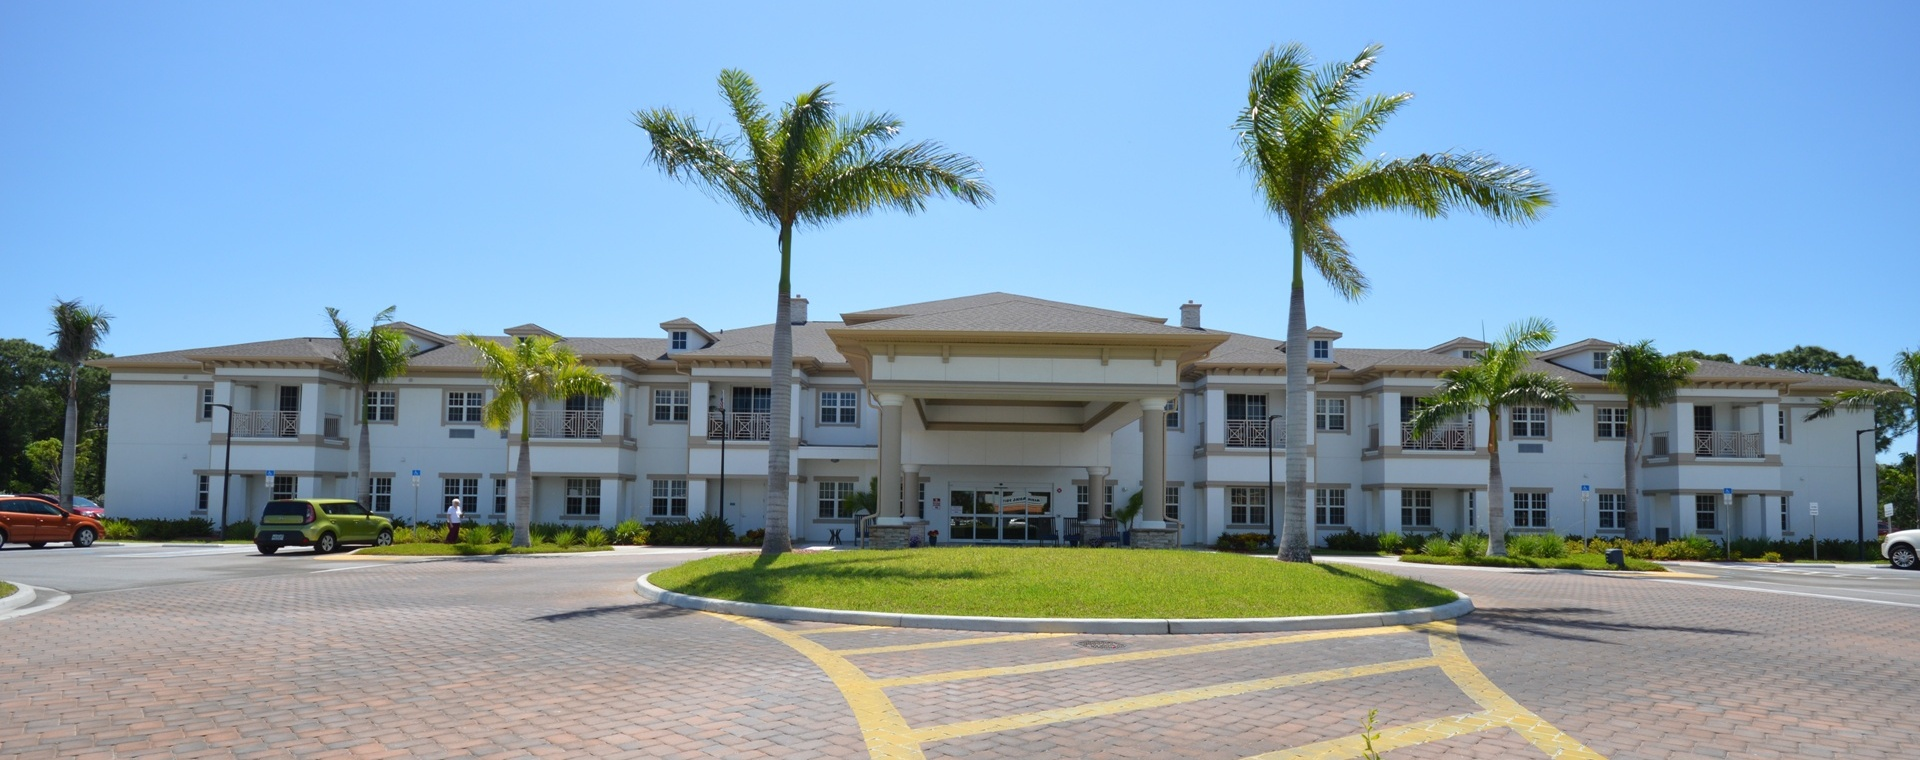 Beach House Assisted Living And Memory Care